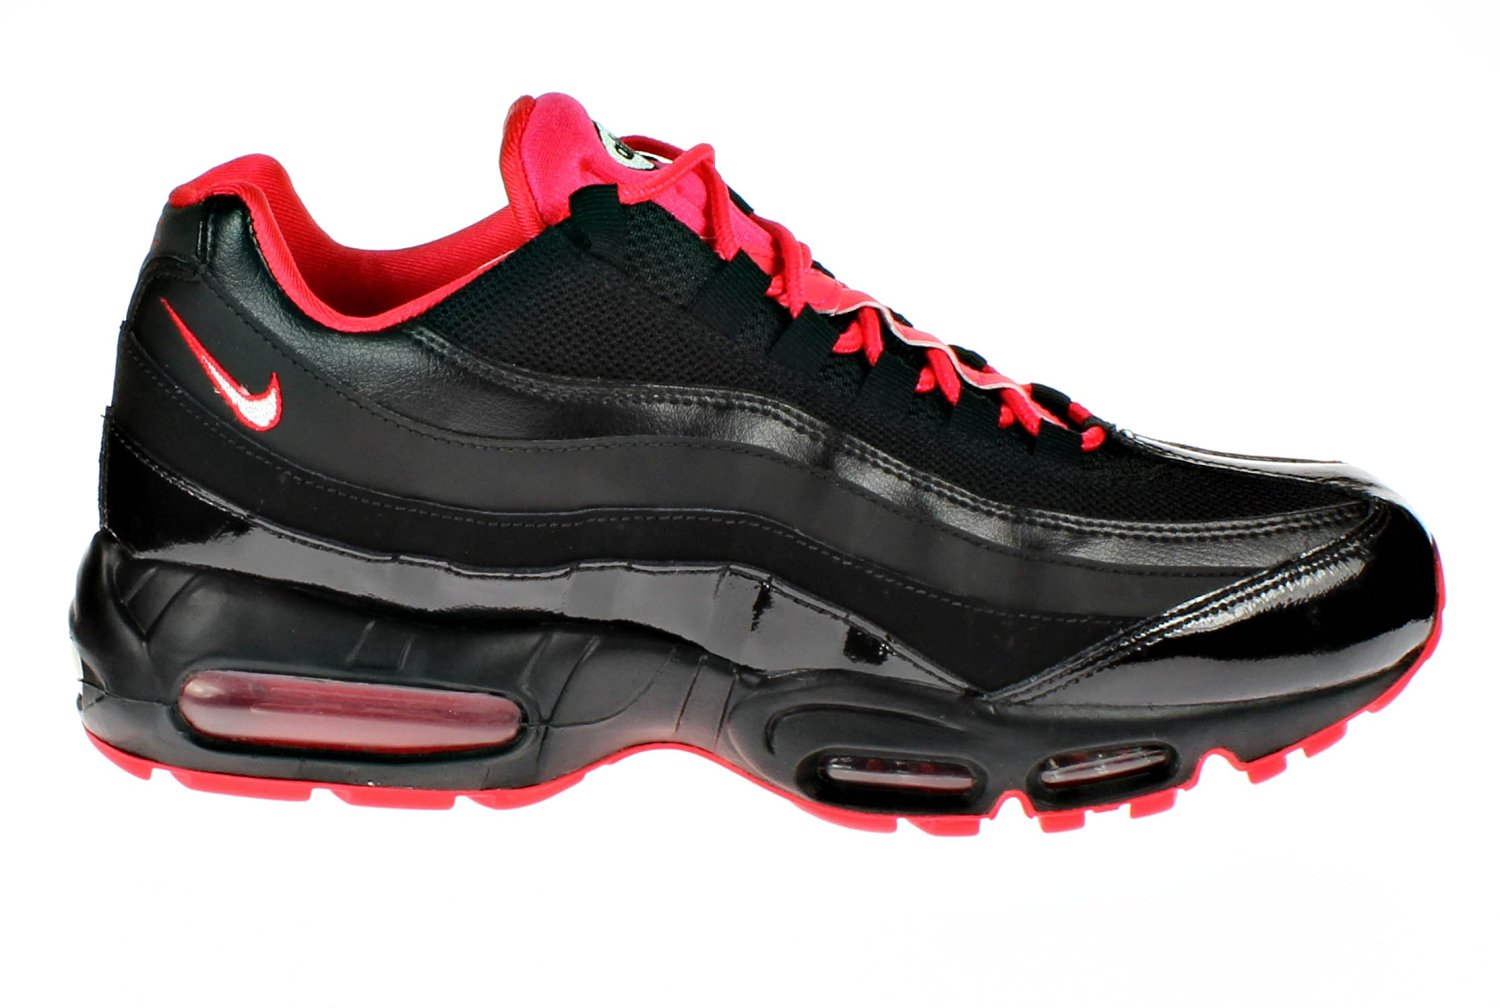 detailed look 29761 0c30b Get Quotations · Nike Wmns Air Max 9 Black Red Running Shoes 698014-060 US  10.5